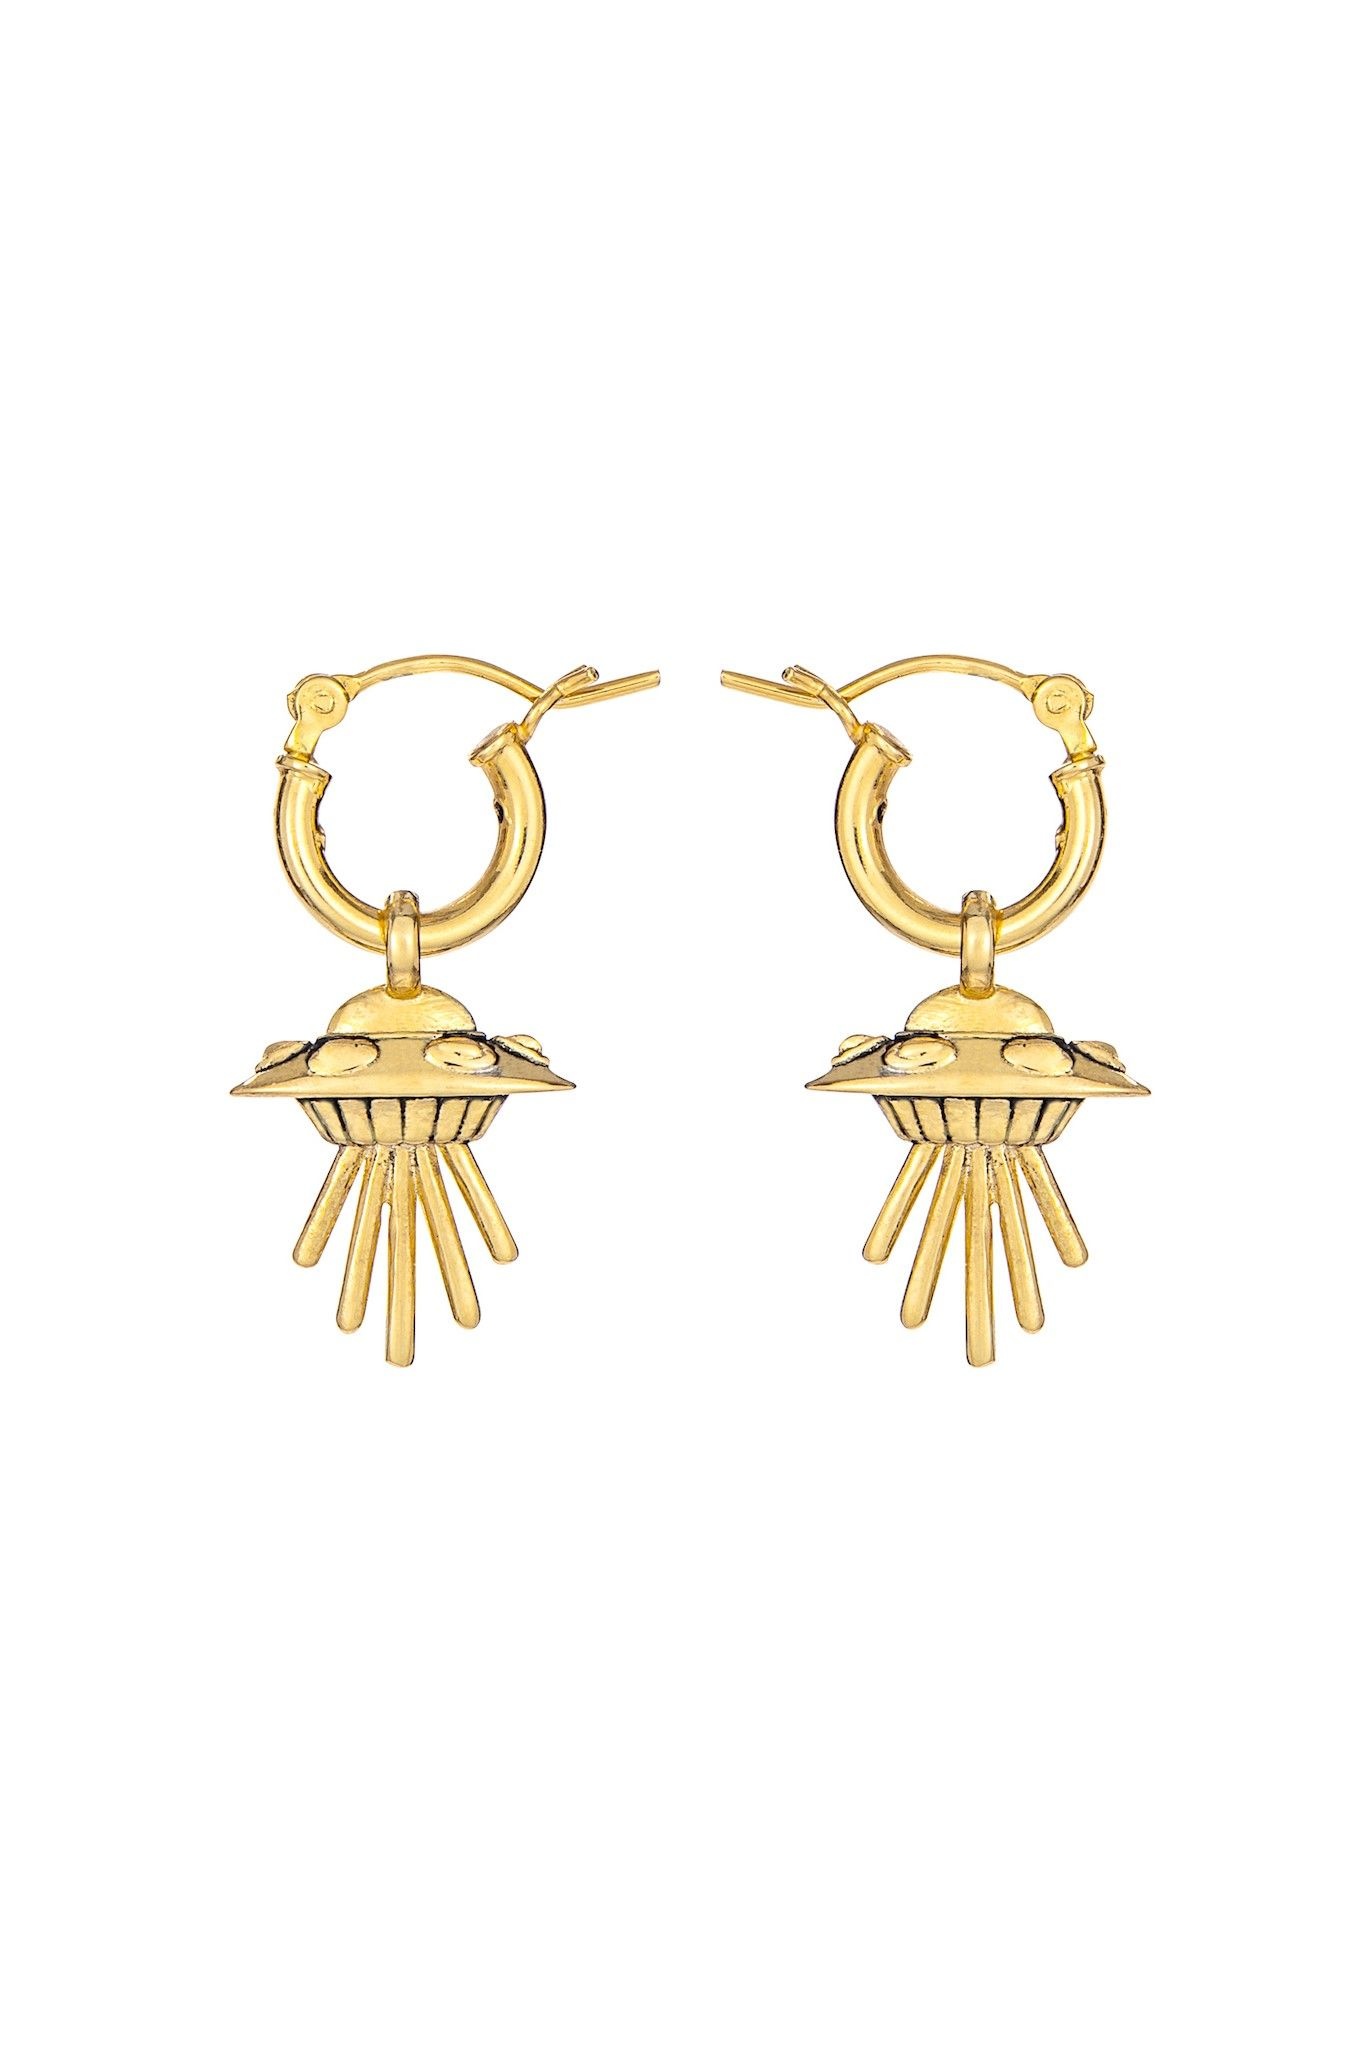 e95ec8a20 Small Flying Saucer Earrings | Little Rooms | Earrings, Jewelry ...